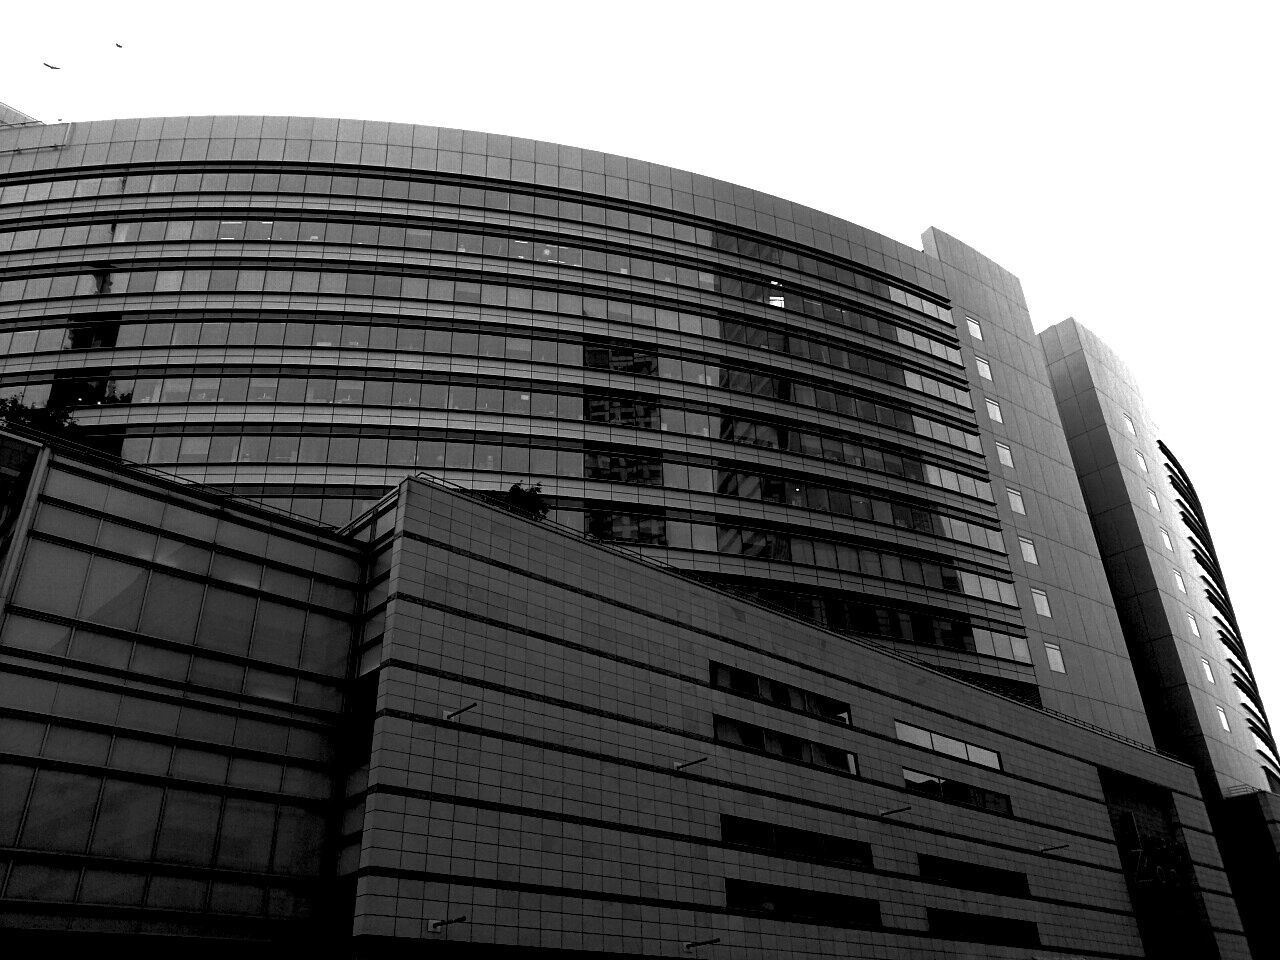 Monochrome Photography Building Exterior Black And White Street Photography Glass Building Glass Windows New Building  Architecture_collection EyeEm Street Photography Architectural Detail In The Centre Of City Windows EyeEm Buildings EyeEm Best Edits EyeEm Gallery EyeEm Best Shots Simmetrical Simmetrical Building Finestre Bianco E Nero Eyeem Black And White Grattacielo Skyscraper